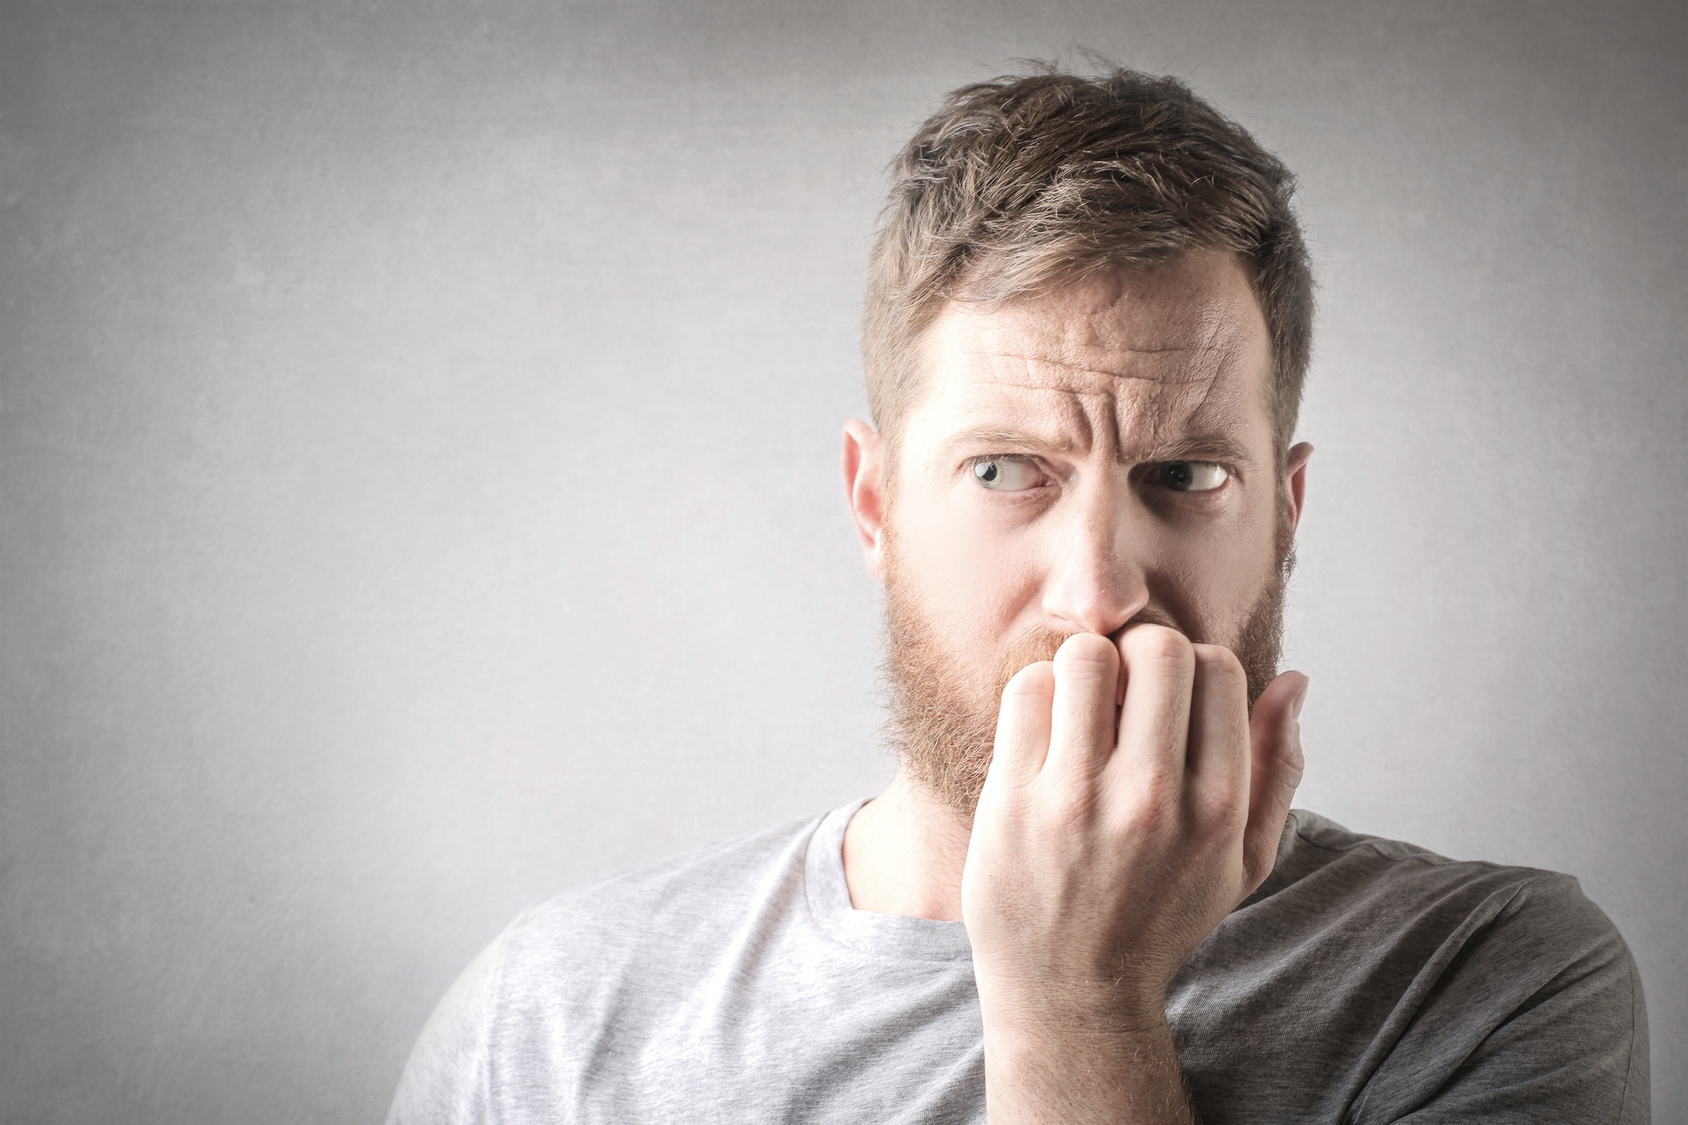 Man biting his nails and scared of going to the dentist